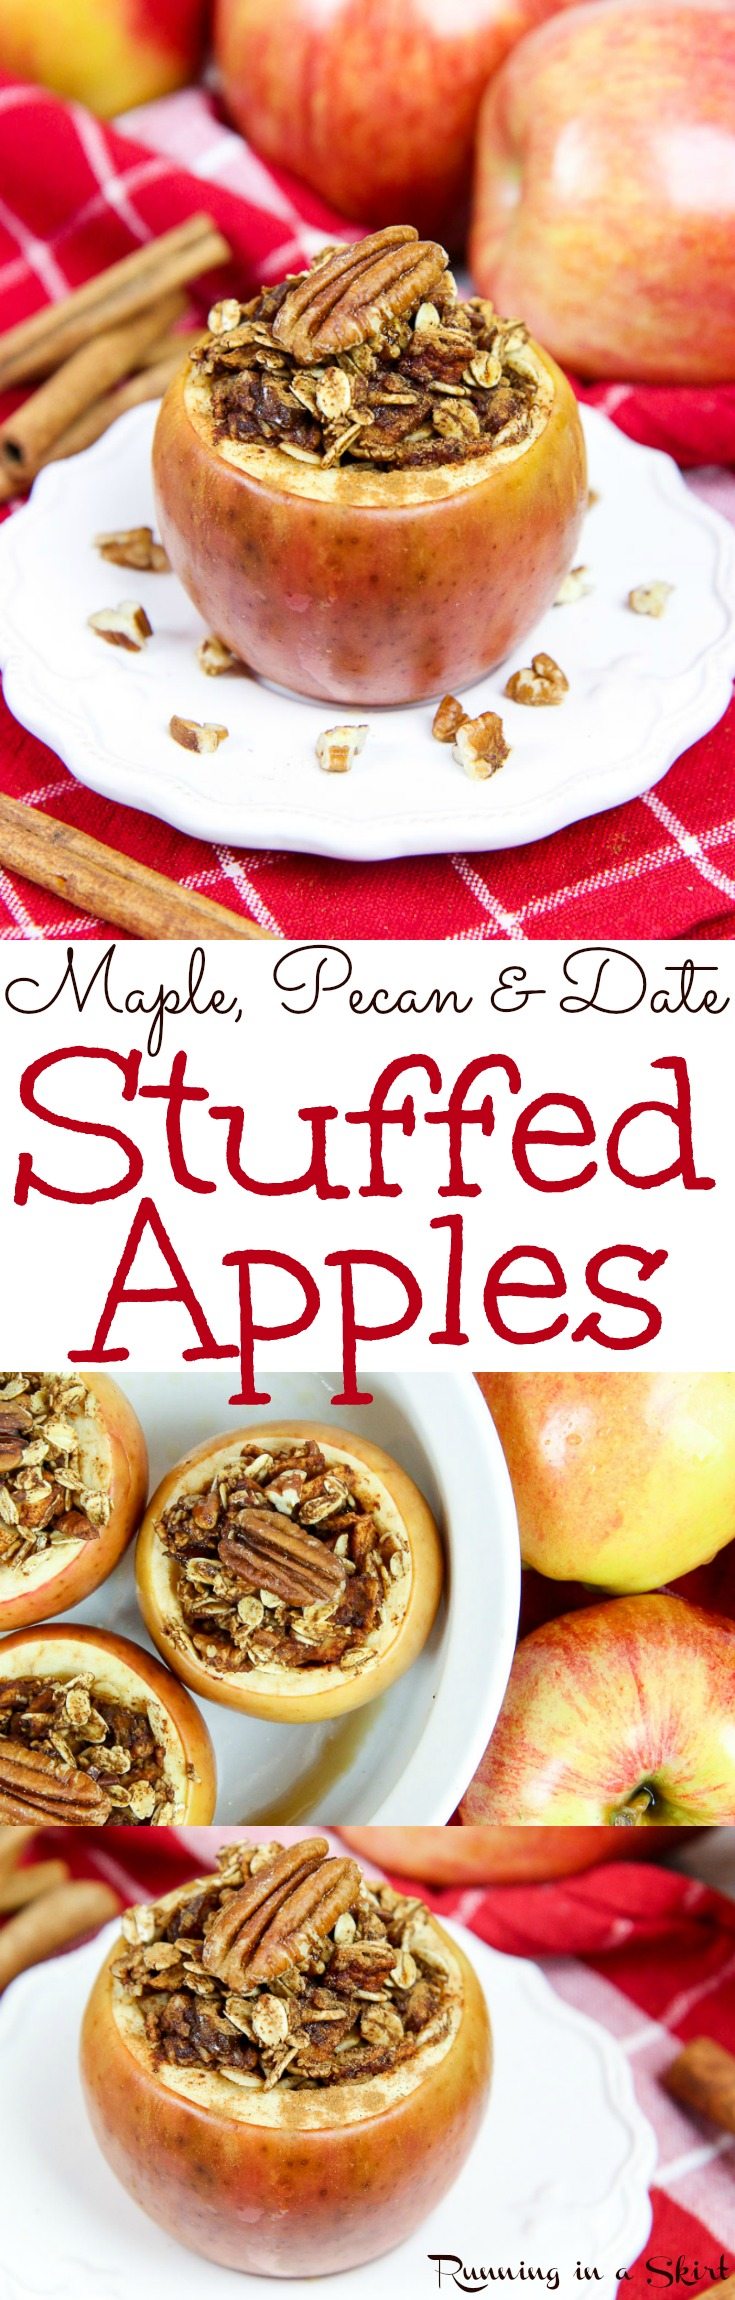 The Best Healthy Stuffed Apple recipe - Maple, Pecan and Date Stuffed Apples...baked to perfection! An easy dessert stuffed with oatmeal and cinnamon,  Vegan, low carb, gluten free friendly and vegetarian.  Tastes like an apple crisp without the crust! Perfect for fall treats. / Running in a Skirt via @juliewunder